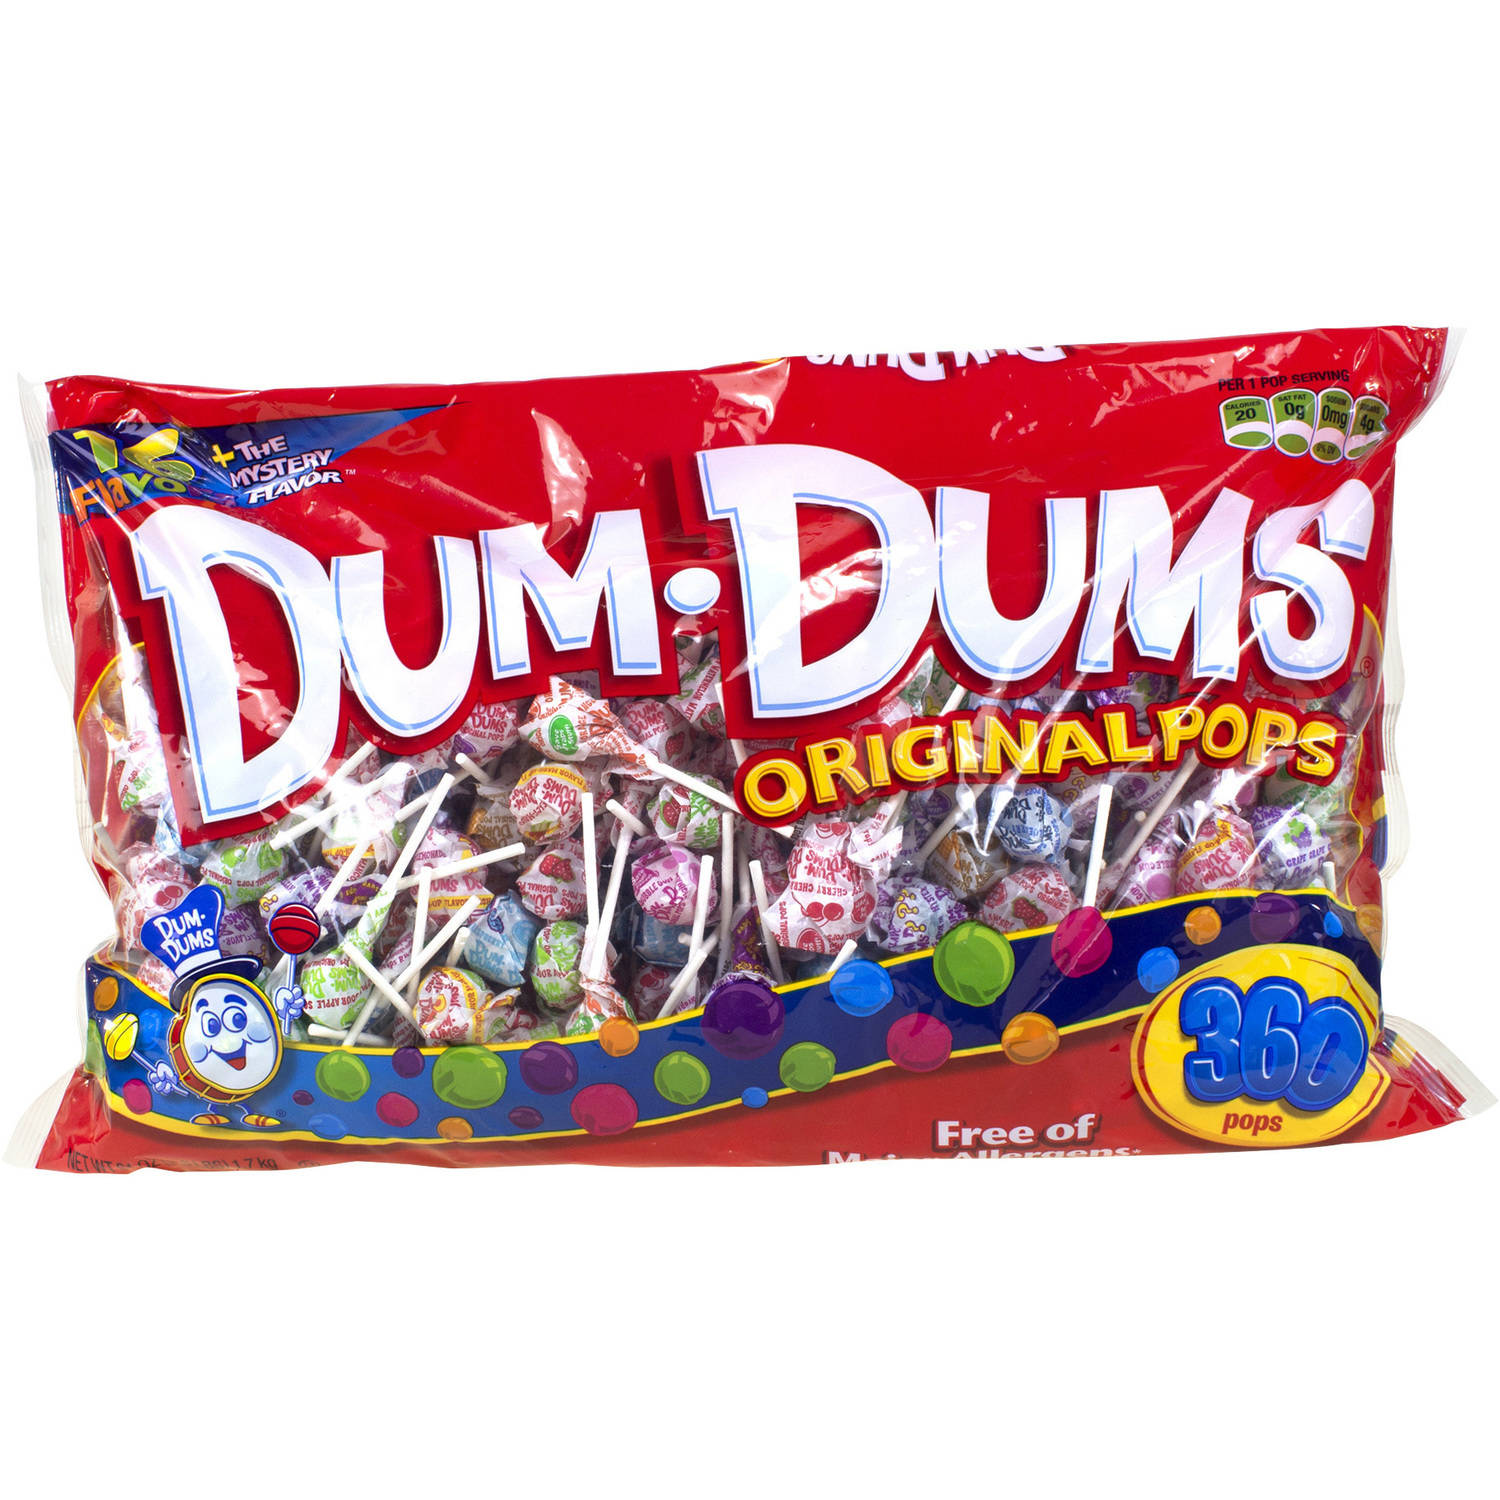 Dum Dums Original Pops Lollipops, 360 count, 3.81 lbs